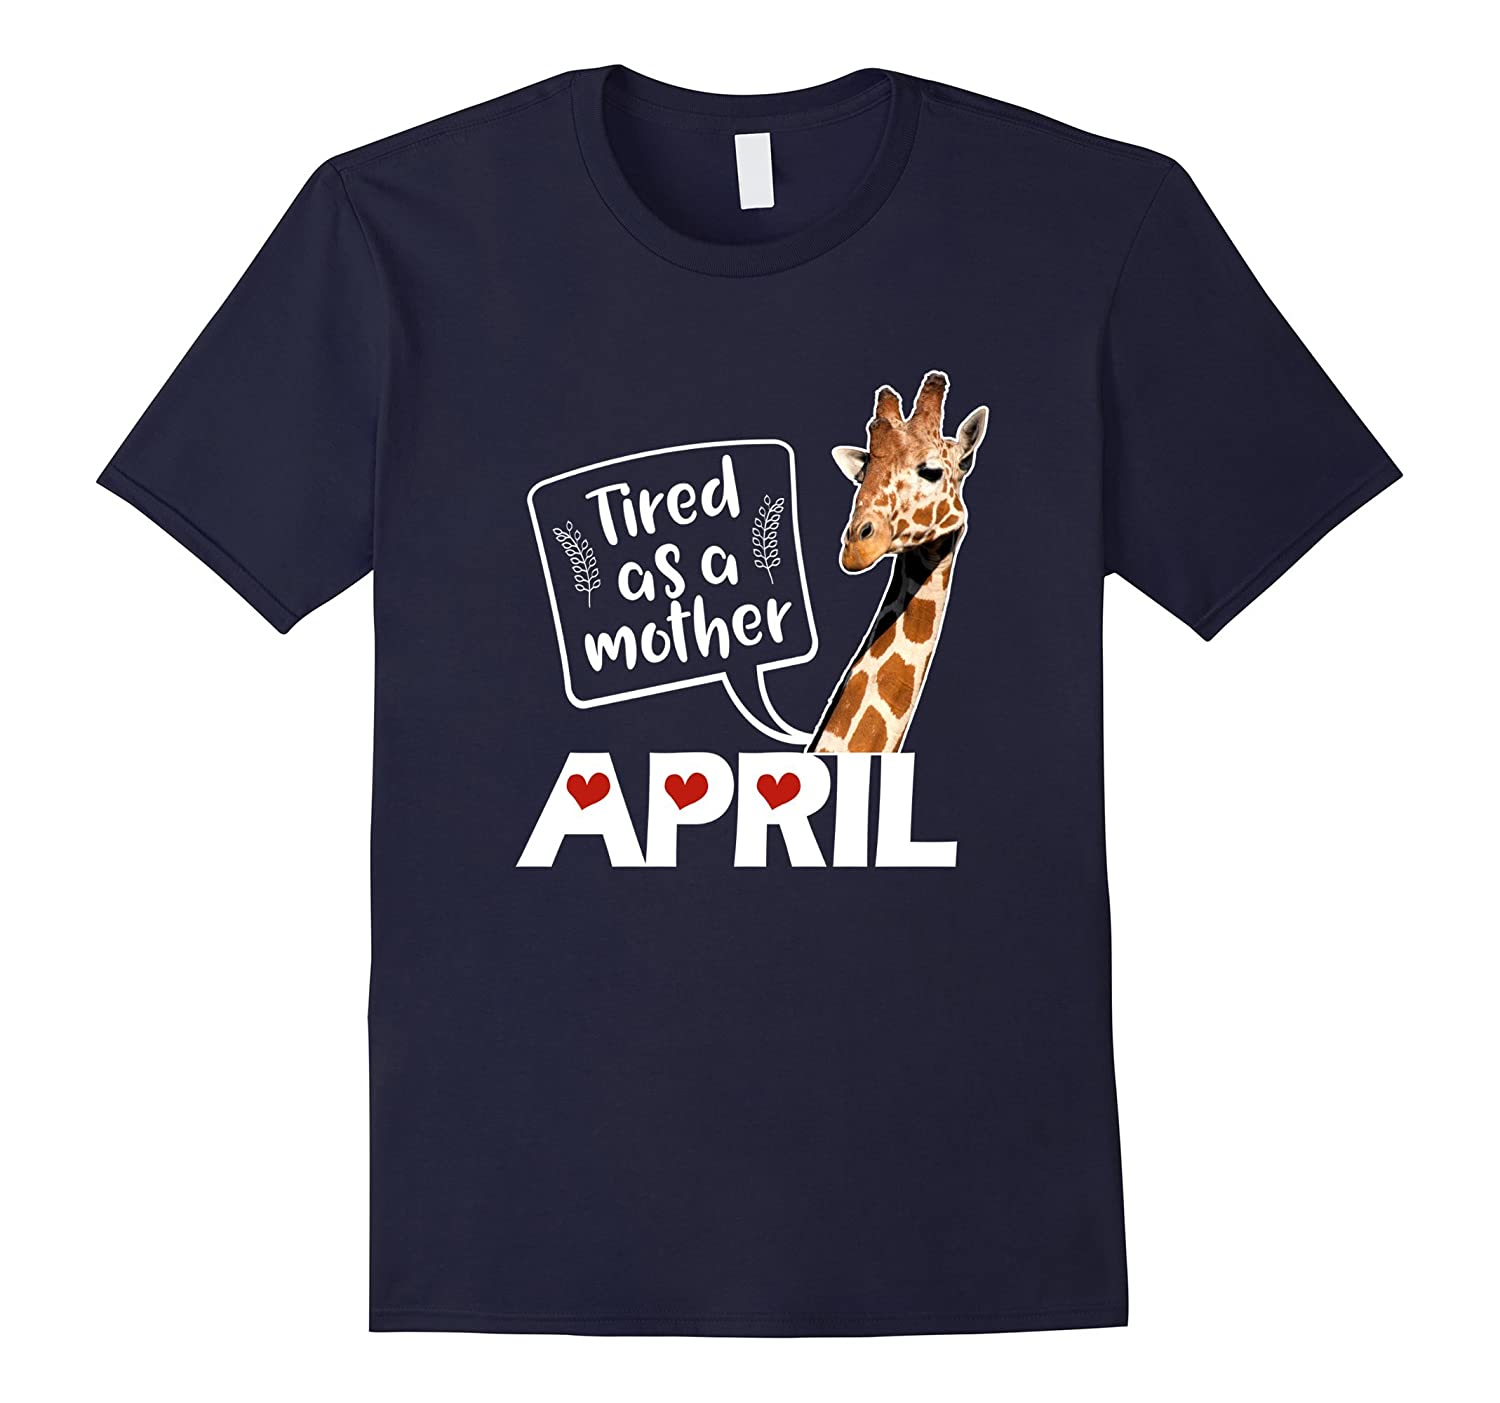 April The Giraffe Saying Tired As a Mother Funny T Shirt-TH